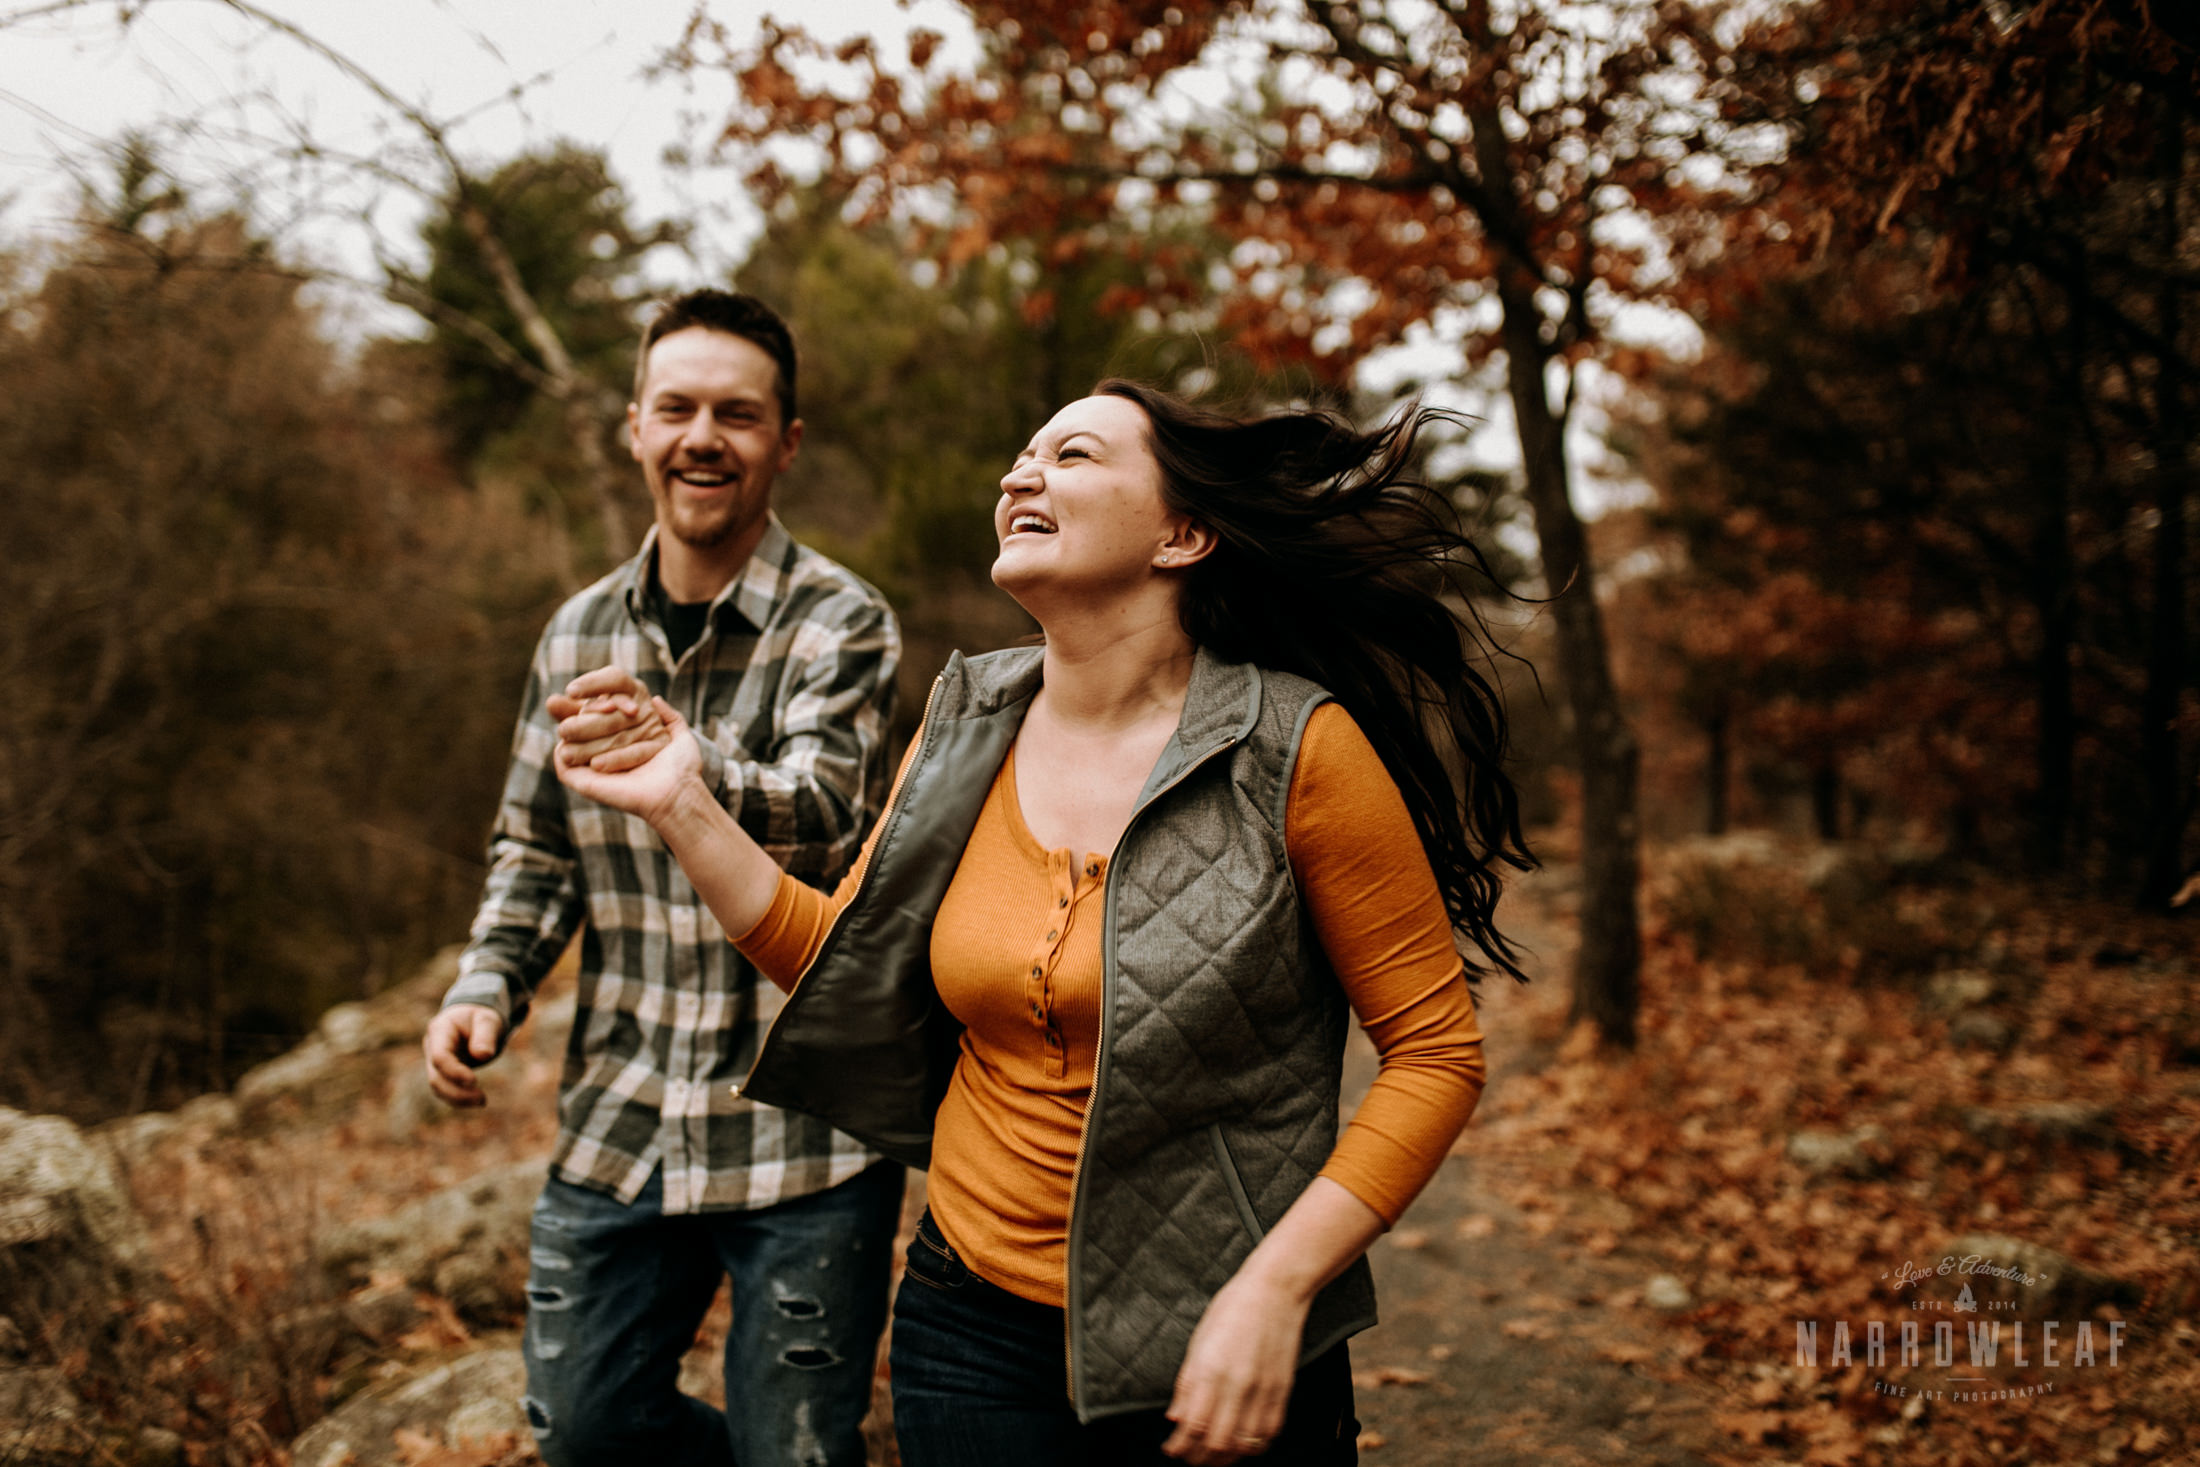 wisconsin-fall-adventure-engagement-Narrowleaf_Love_and_Adventure_Photography-0532.jpg